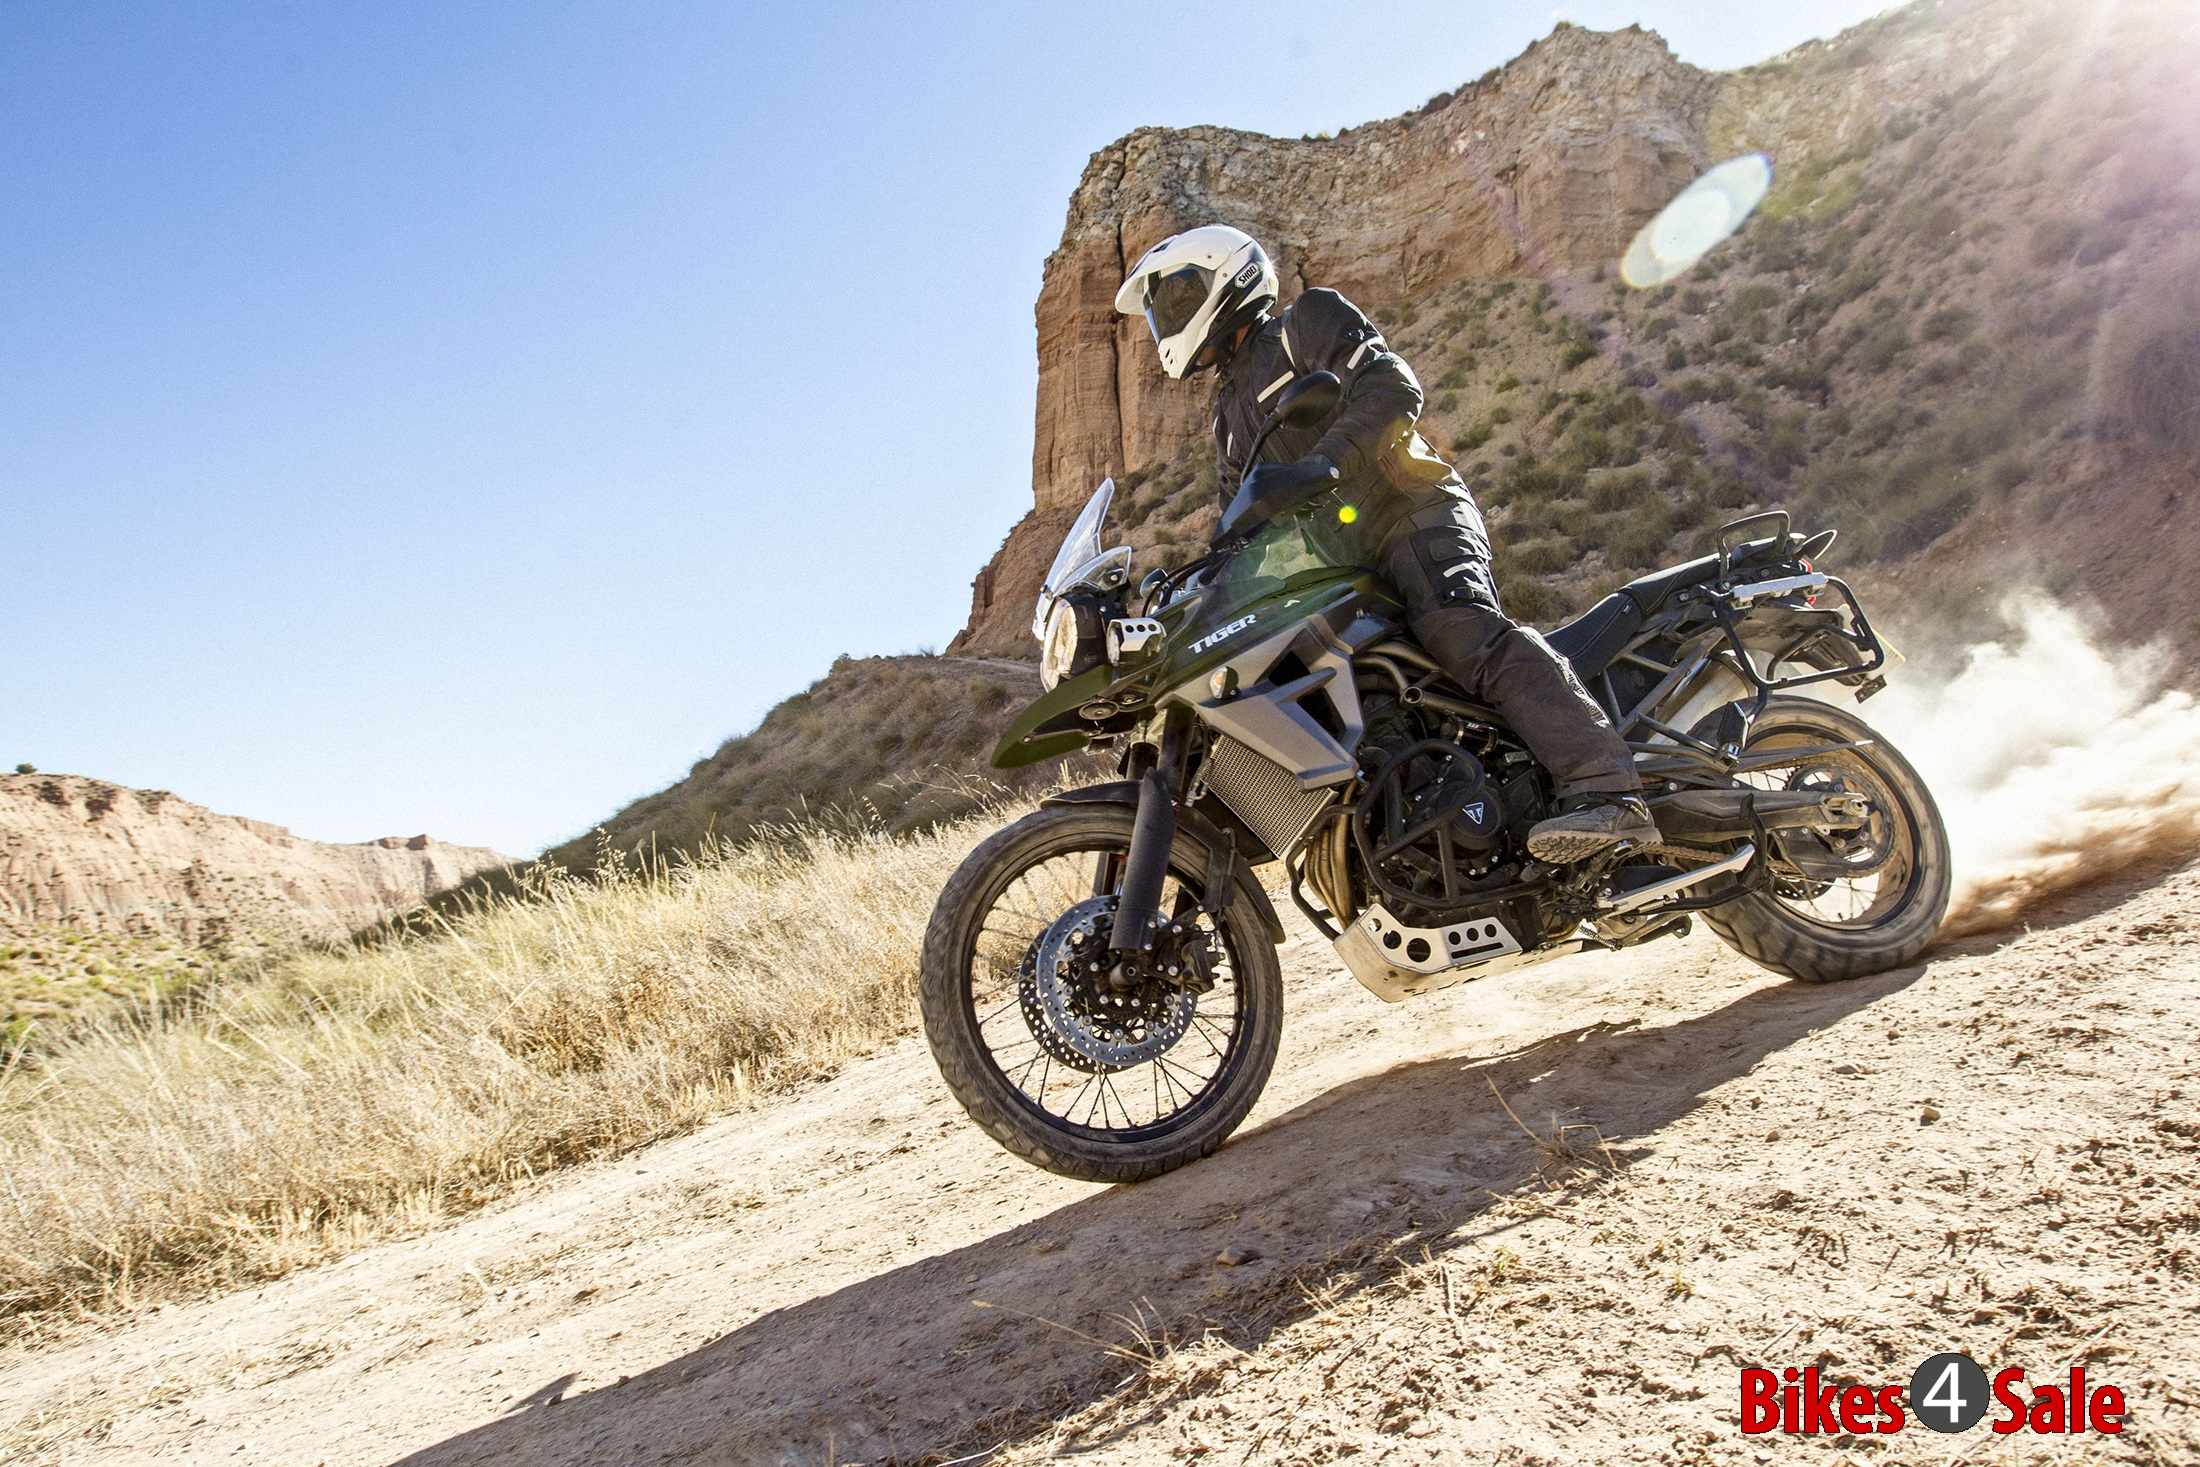 Triumph Tiger 800 XCA off-road